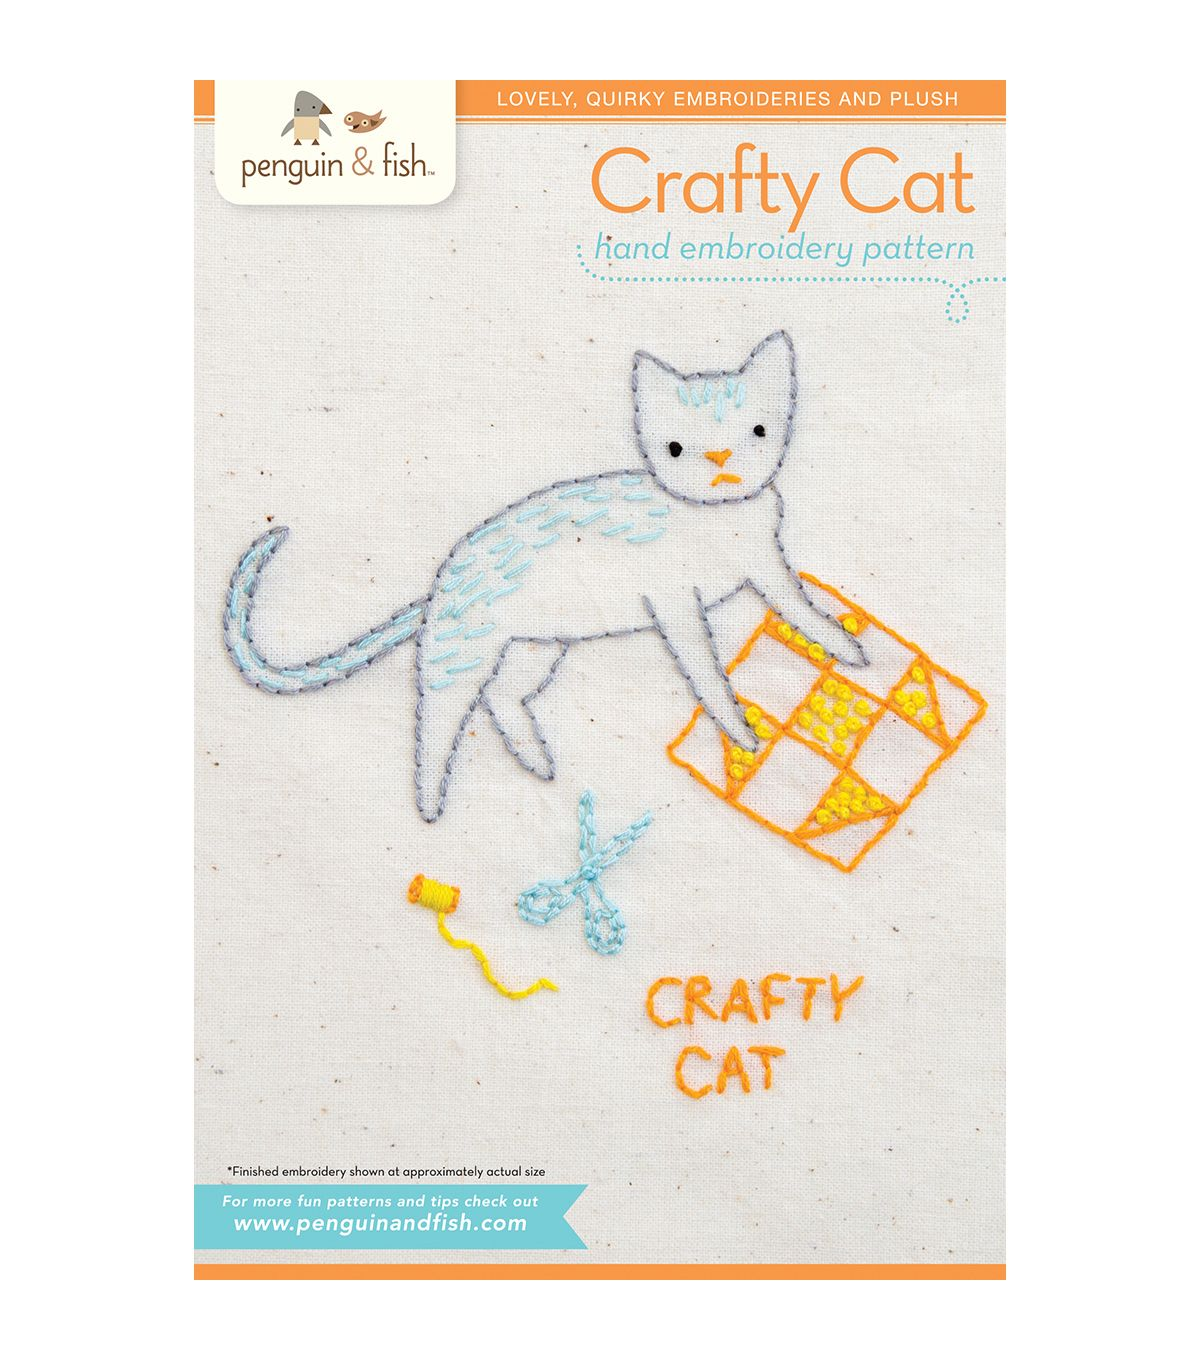 Crafty cat hand embroidery pattern